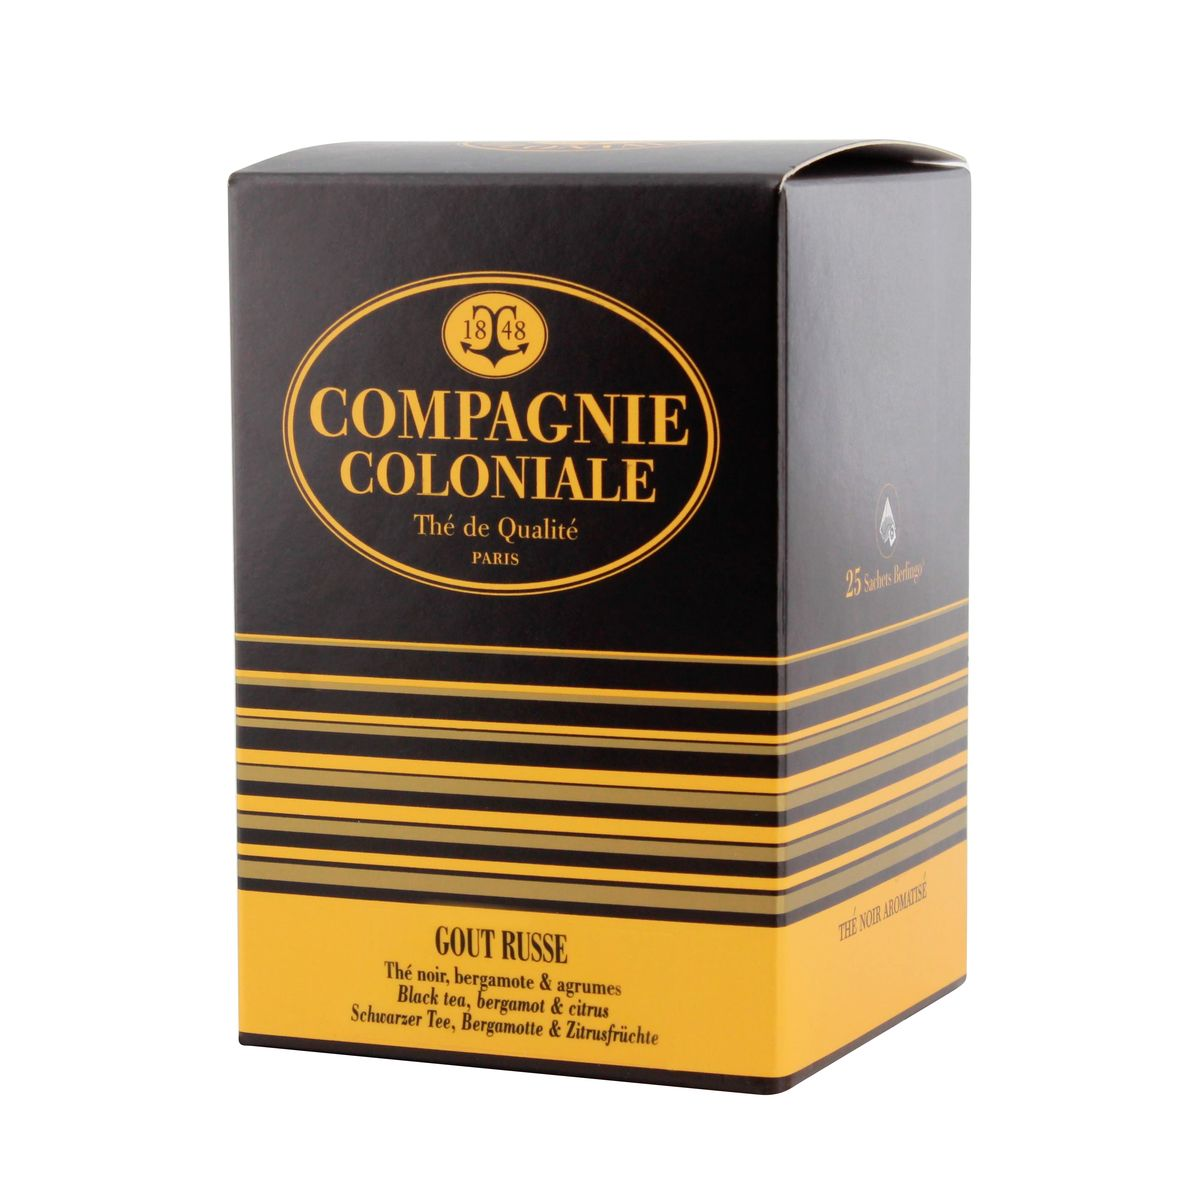 THE NOIR AROMATISE 25 BERLINGO GOUT RUSSE - COMPAGNIE COLONIALE